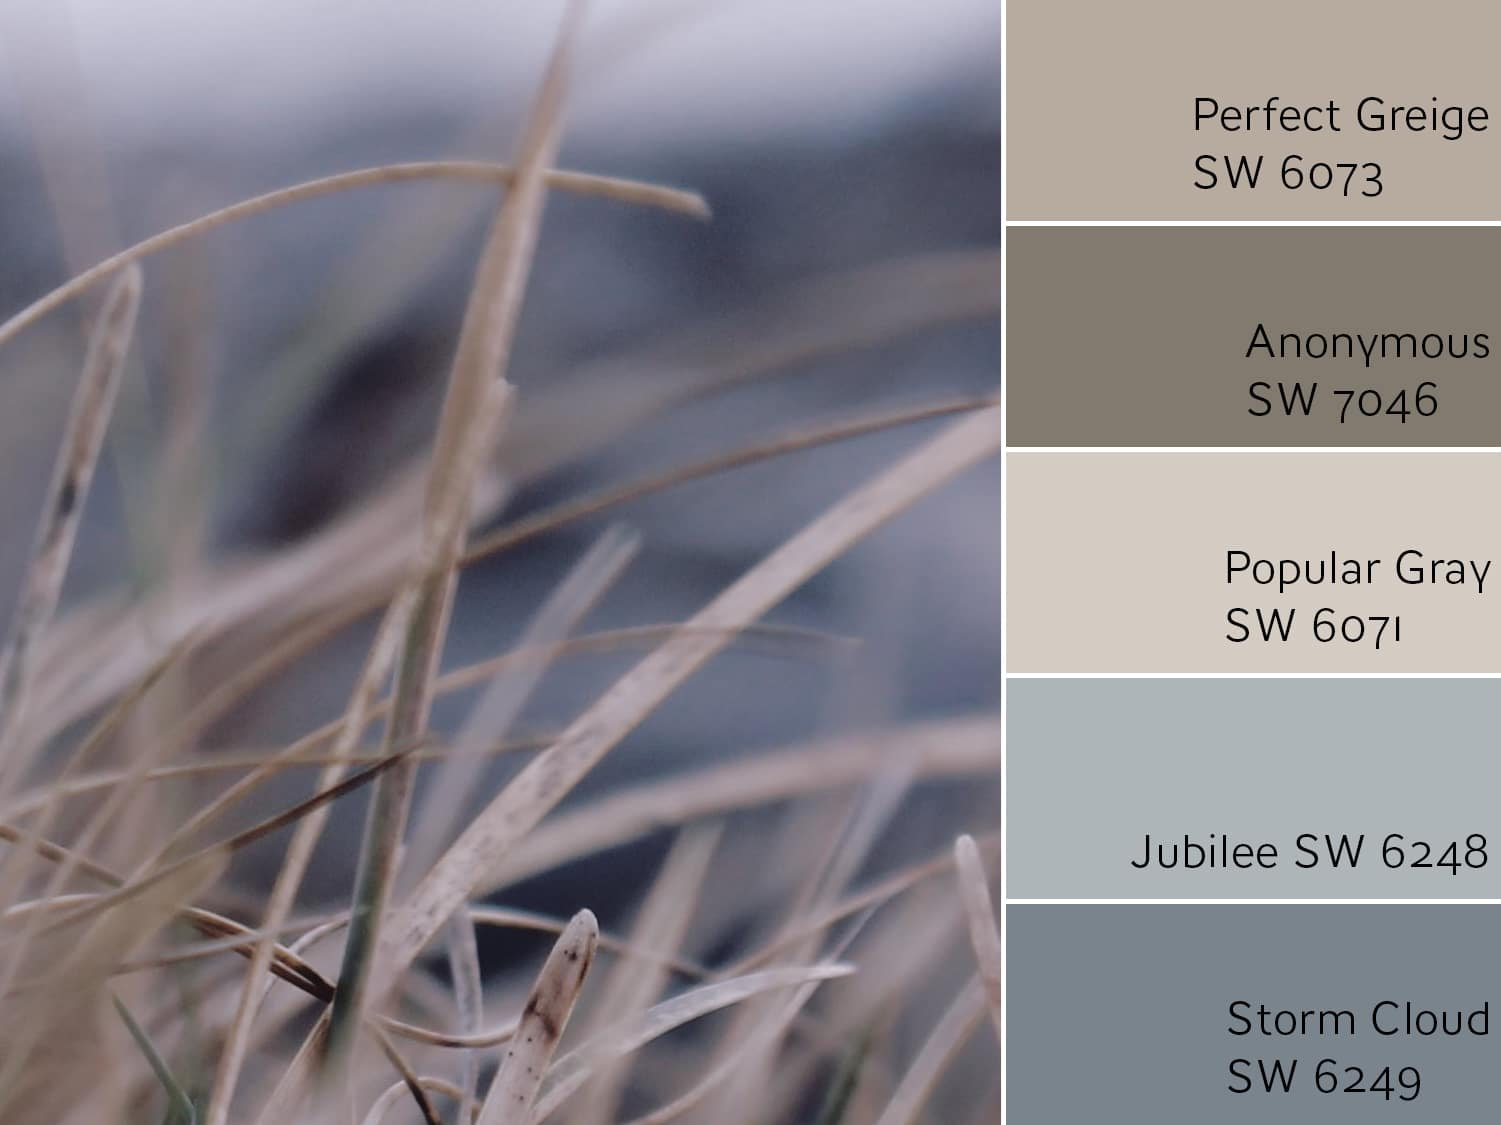 Perfect Greige SW 6073 complimentary scheme.